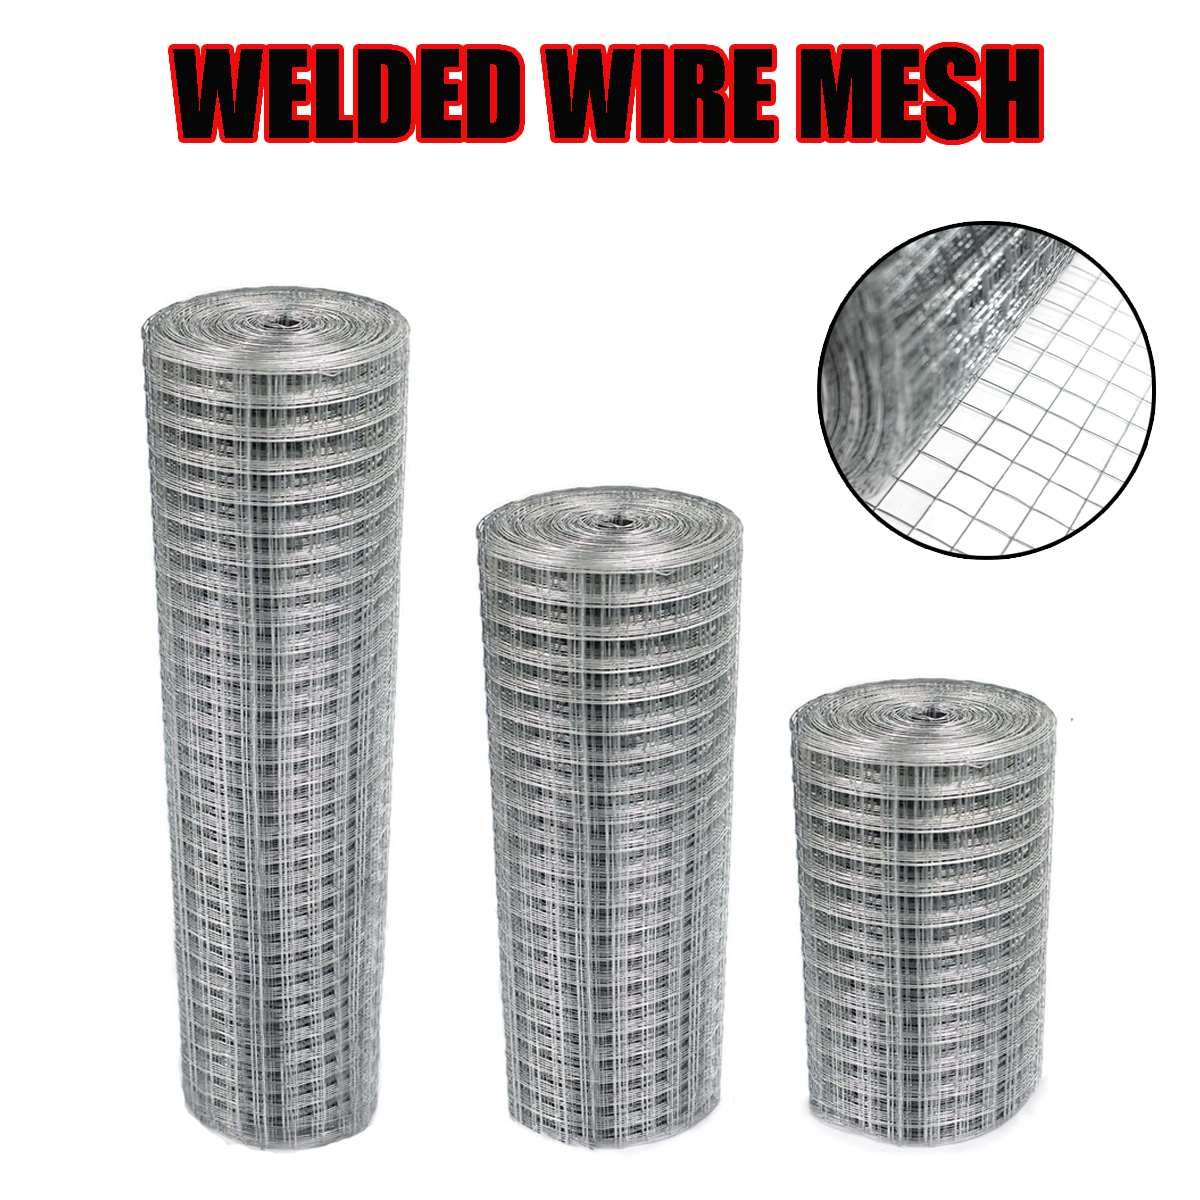 1x1 Inch Welded Galvanised Wire Mesh Fence Aviary Rabbit Hutch Chicken Coop Pet Wire Fence Mesh Fencing